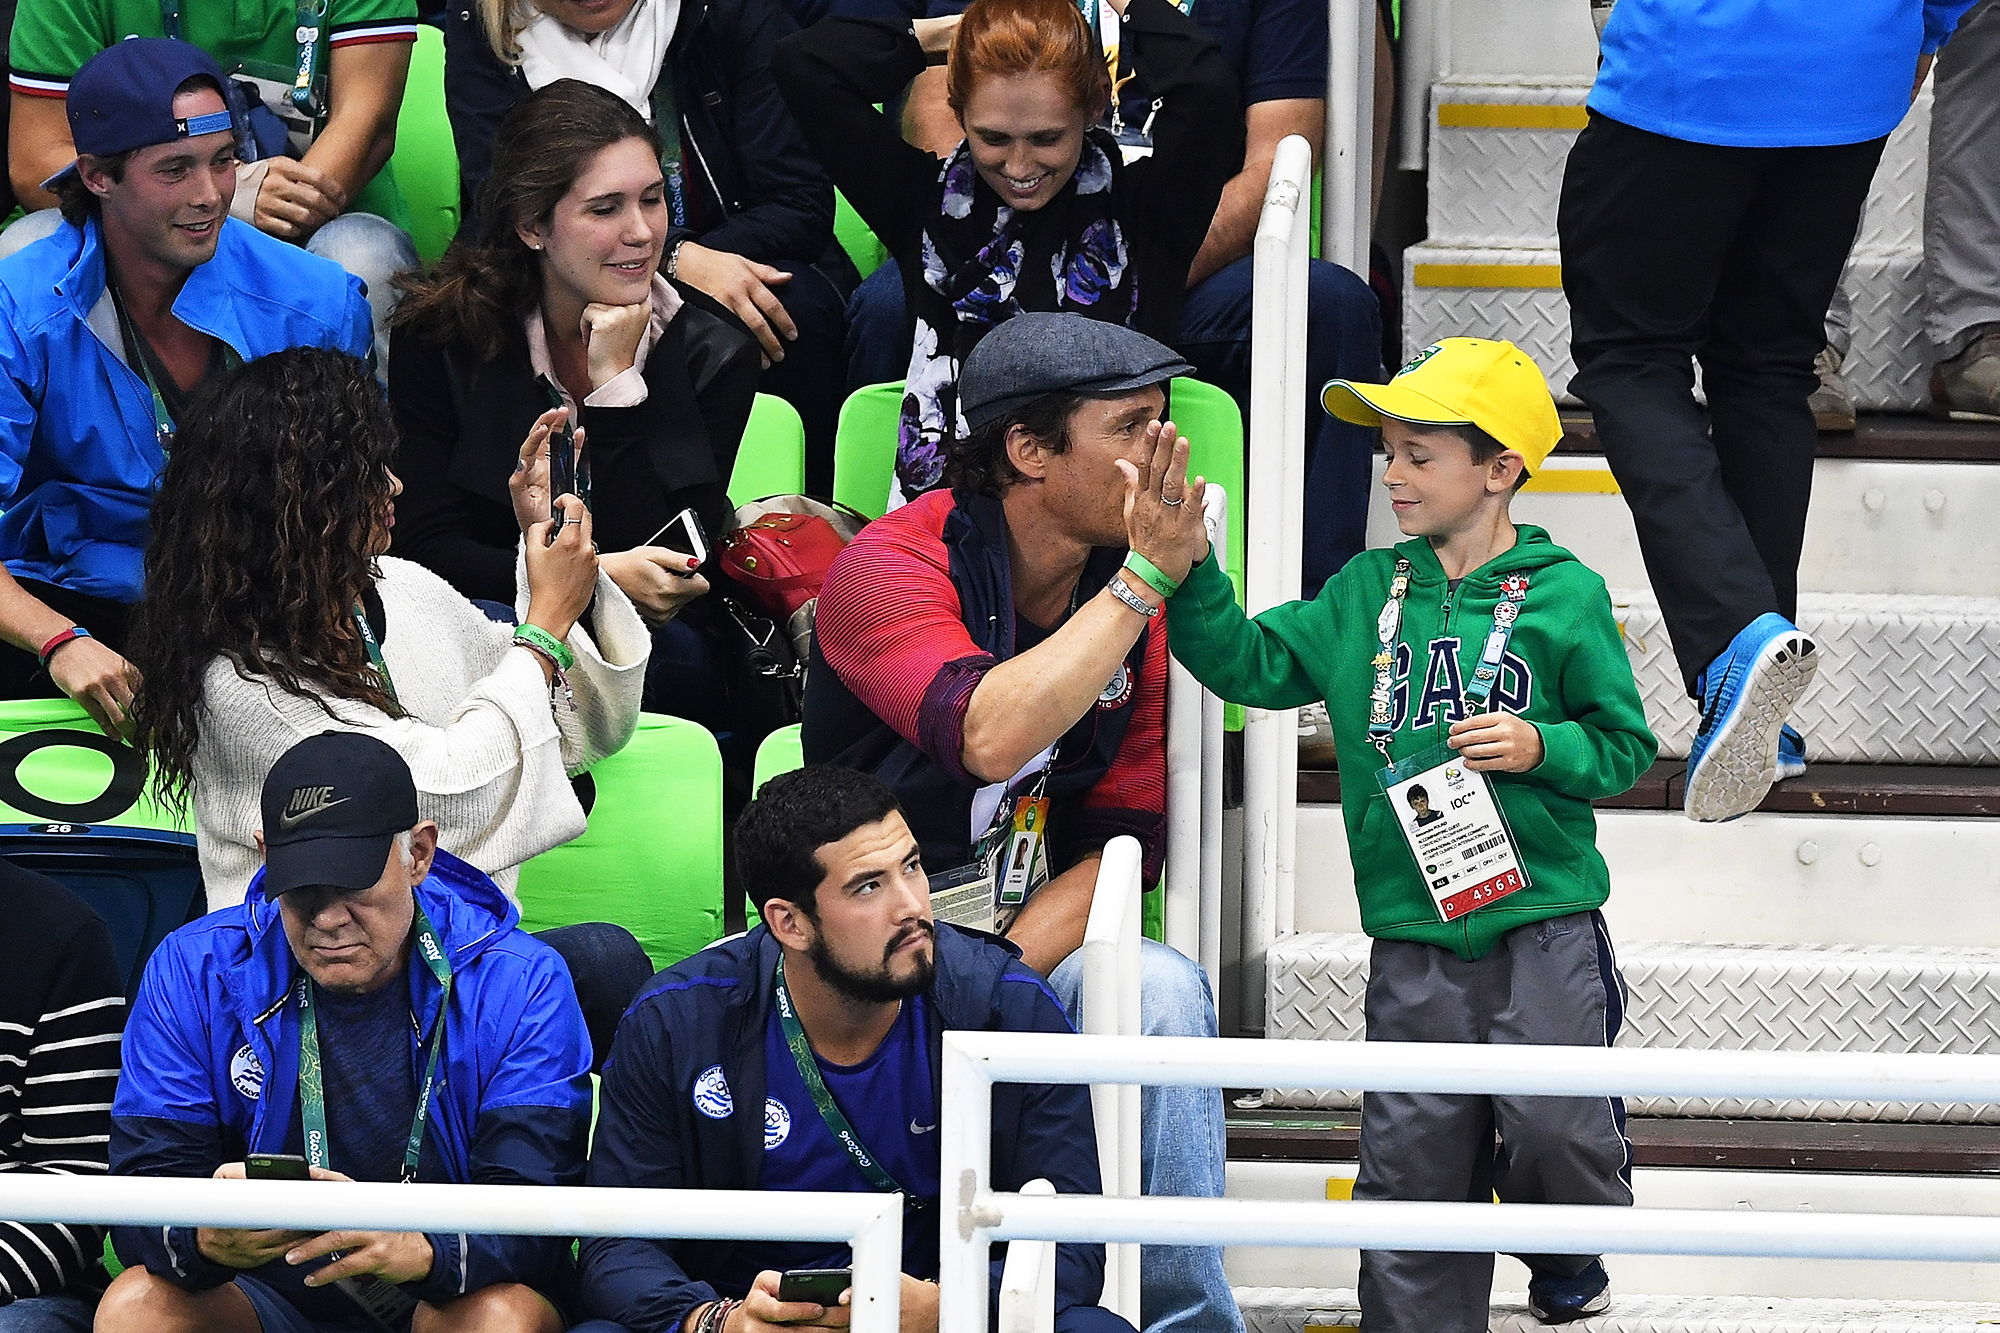 Matthew McConaughey gives a high five to a young boy during the swimming semifinals and finals on Day 5 of the Rio 2016 Olympic Games, on Aug. 9, 2016 in Rio de Janeiro, Brazil.